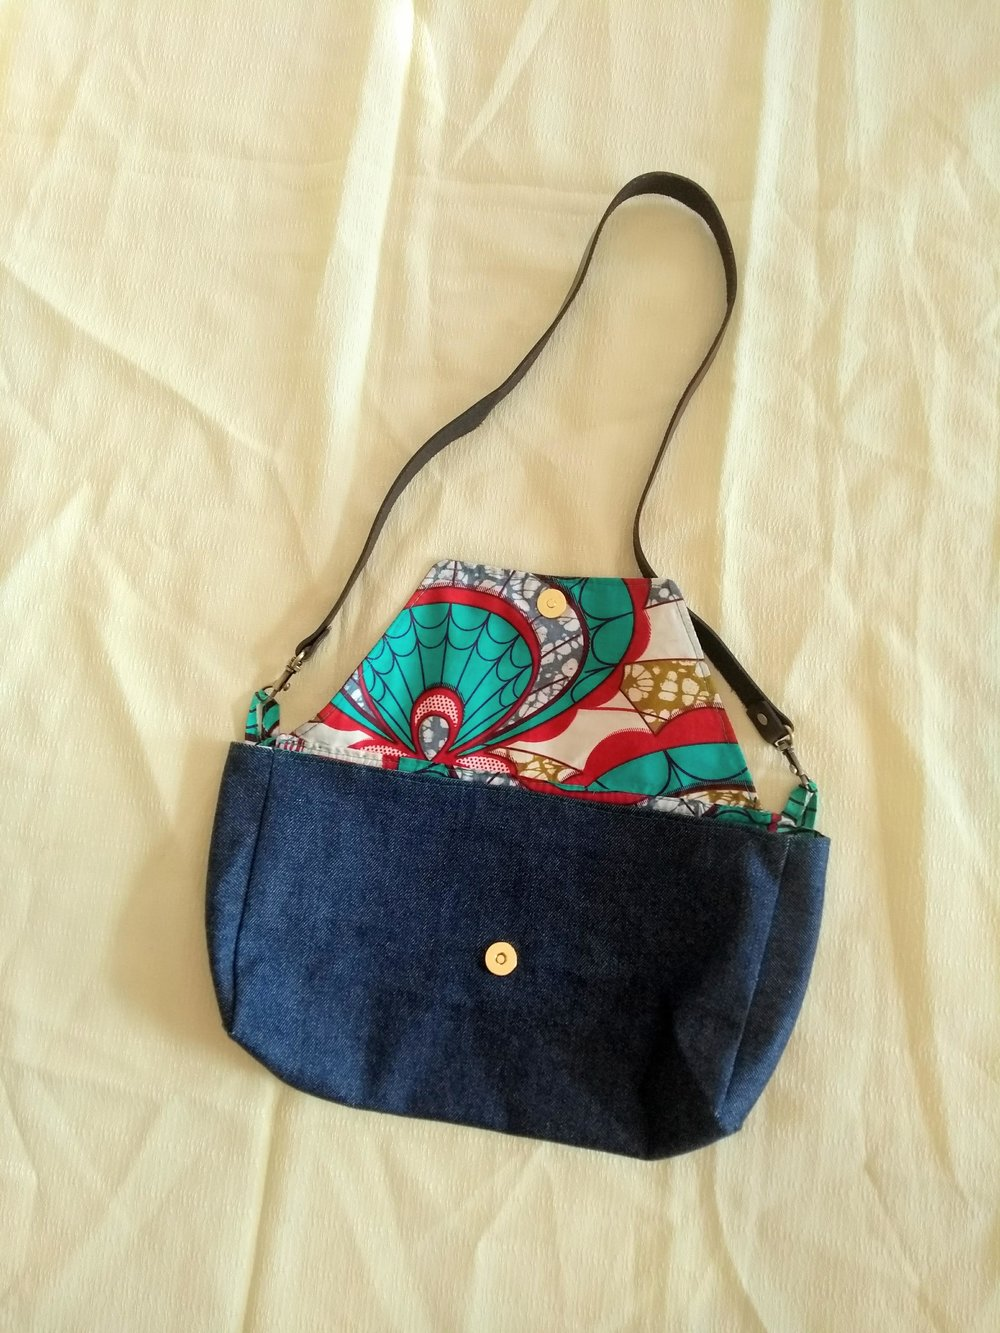 zim sew denim bag.jpg